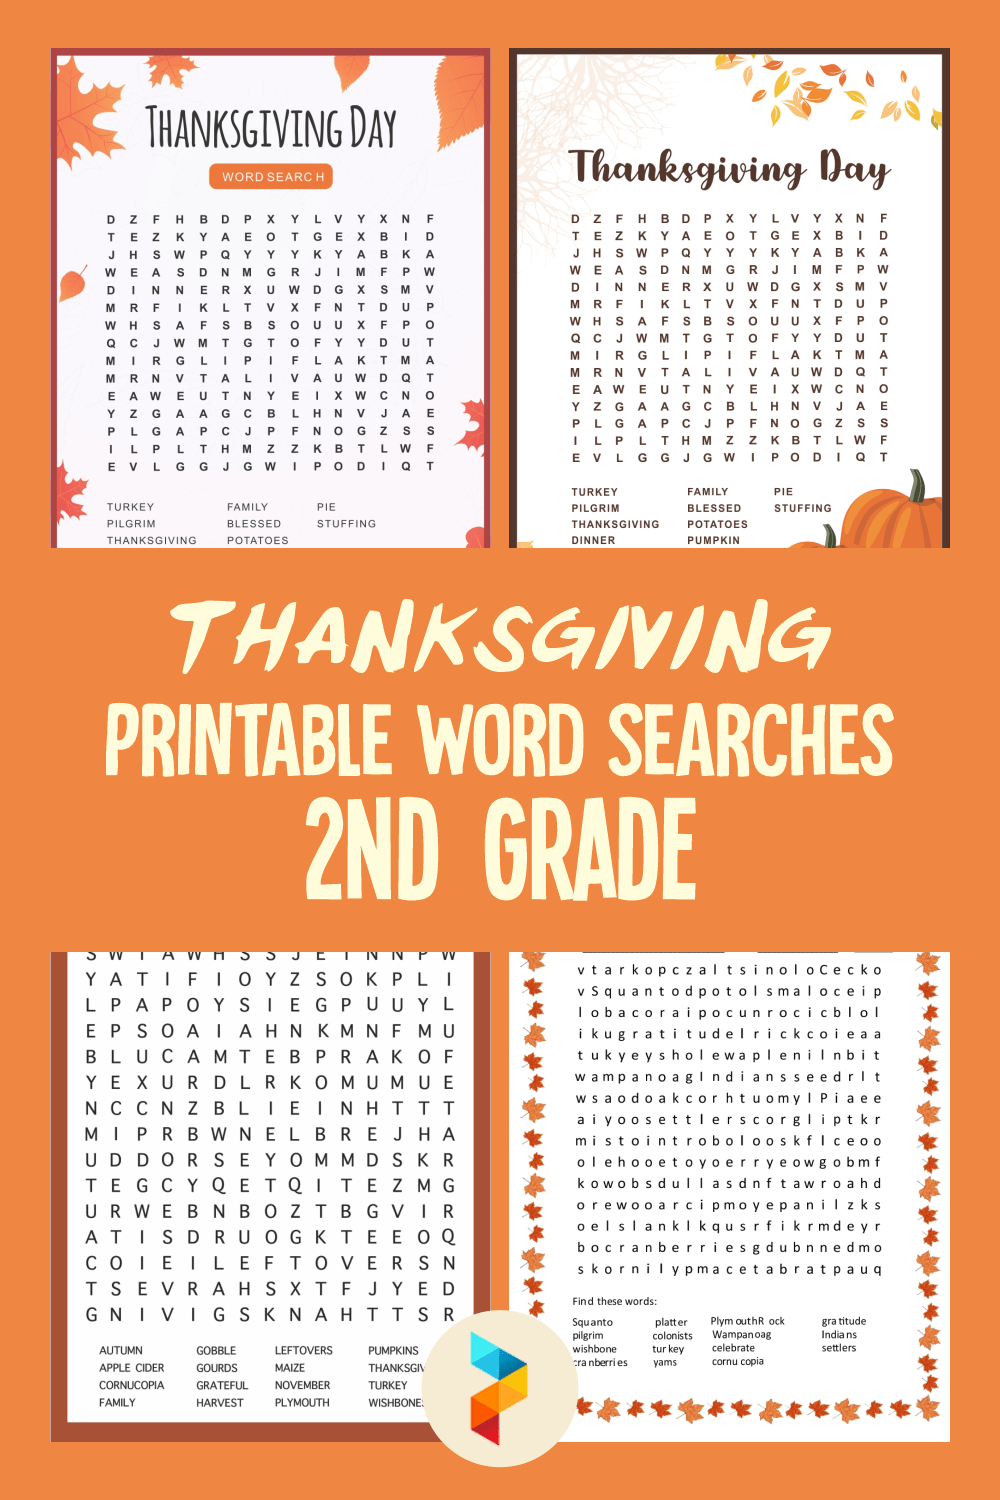 medium resolution of 5 Best Thanksgiving Printable Word Searches 2nd Grade - printablee.com